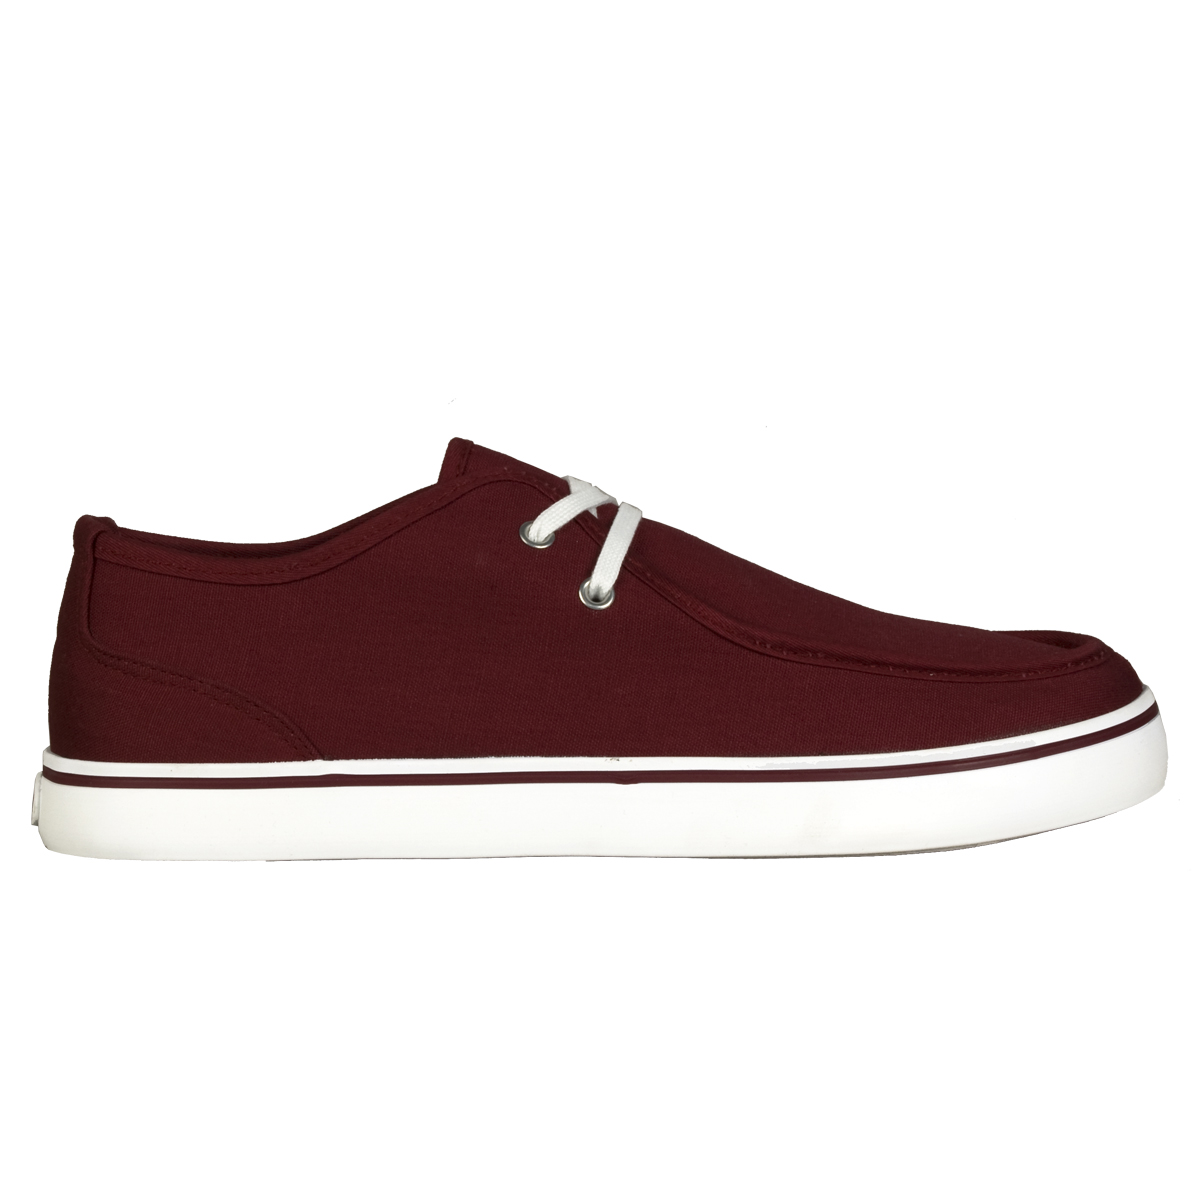 Lugz Sparks Mens Shoe Burgundy/White